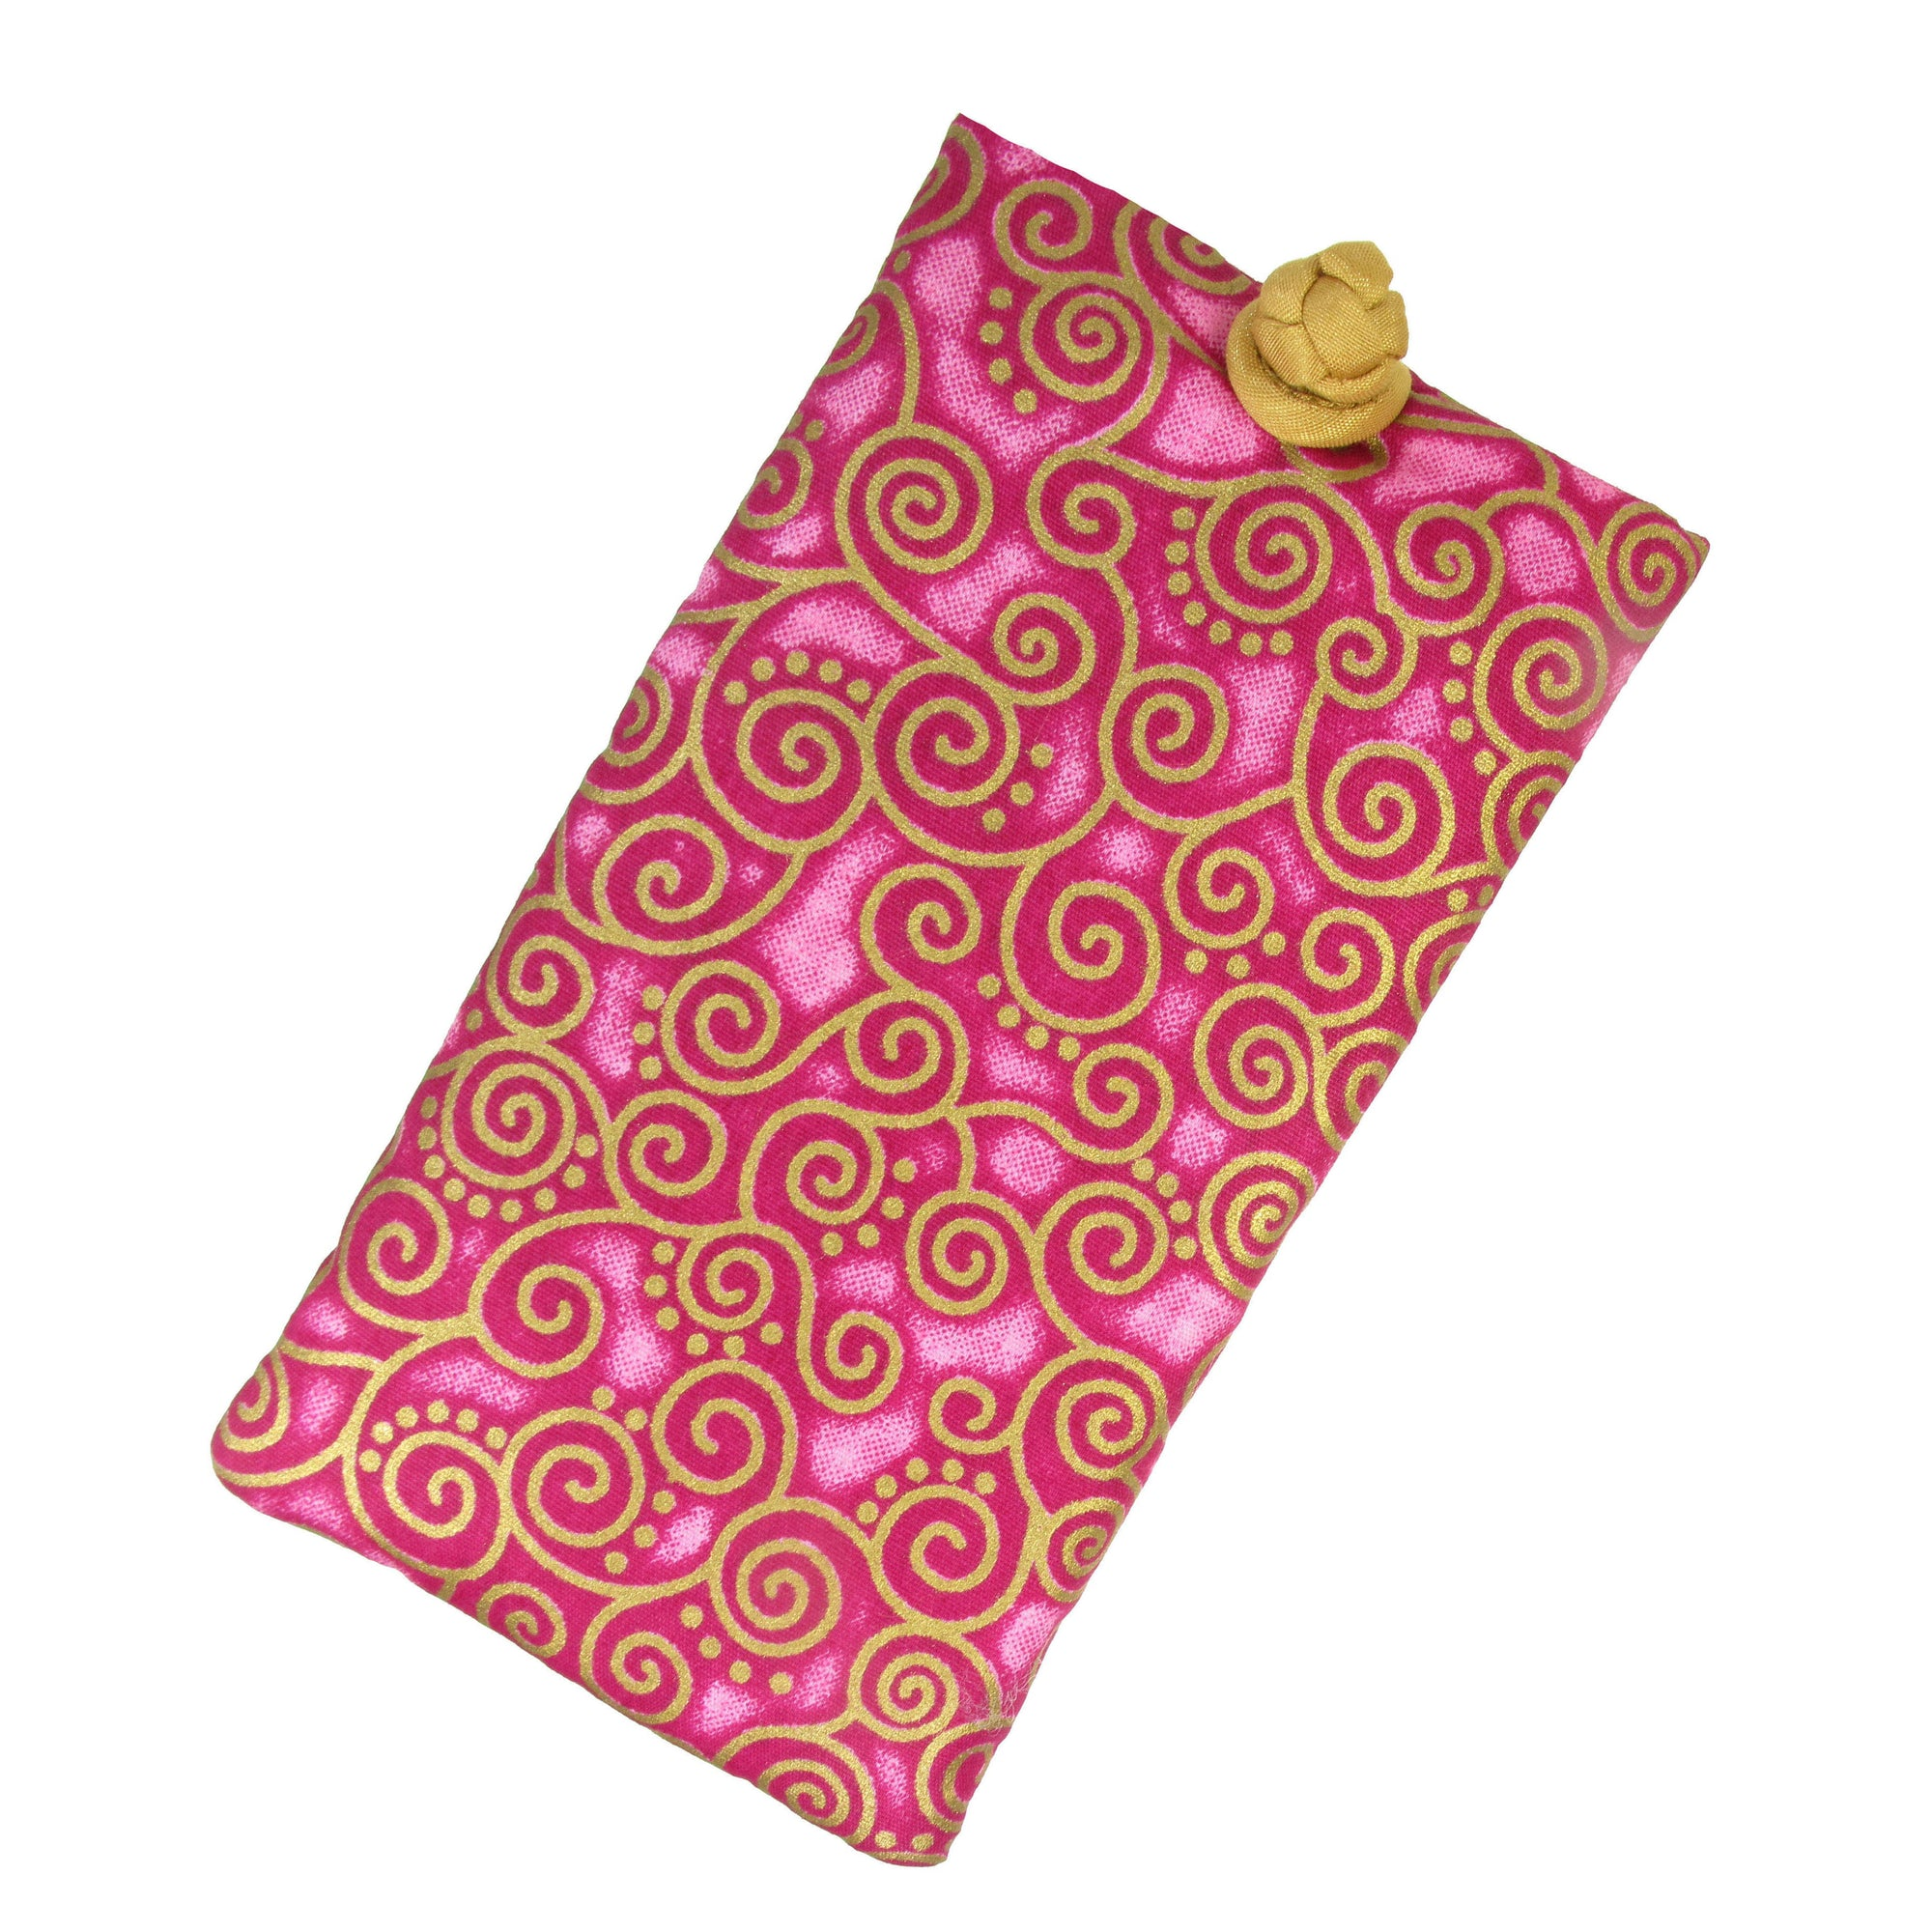 Soft Eyeglass Case (Sunglasses Pouch), Knot and Loop Closure, Cotton and Silk, Fuchsia Pink